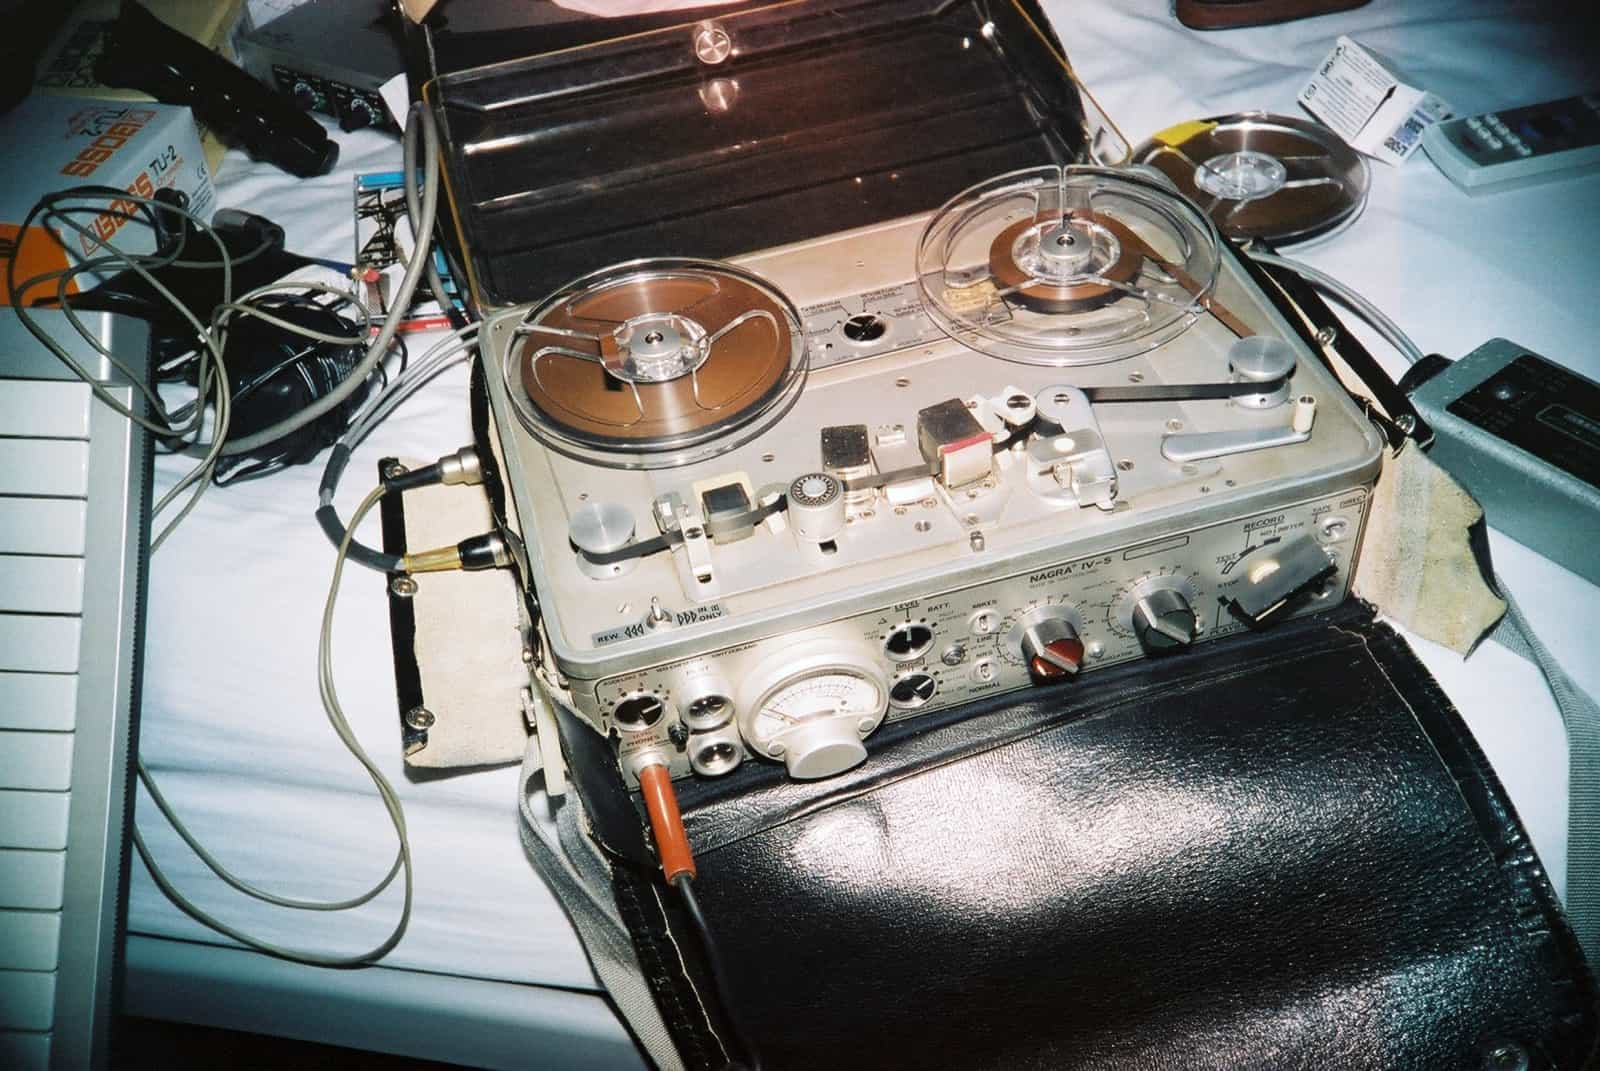 You no longer need a suitcase-sized Nagra for great movie audio.